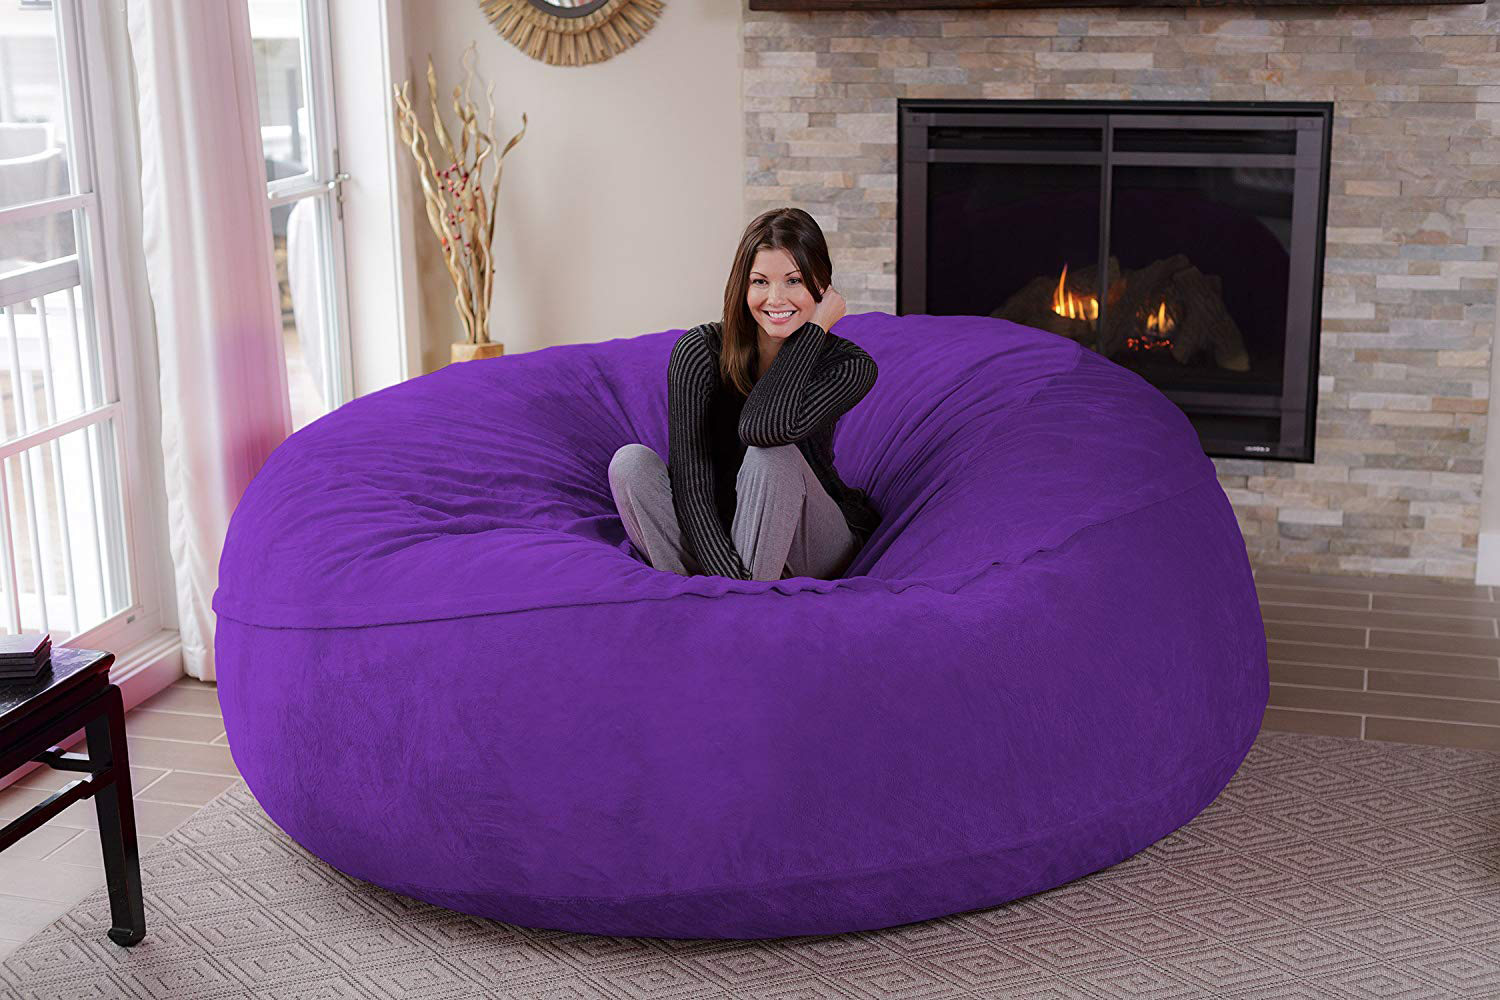 Chill Sack Massive 8 Foot Wide Bean Bag Chair